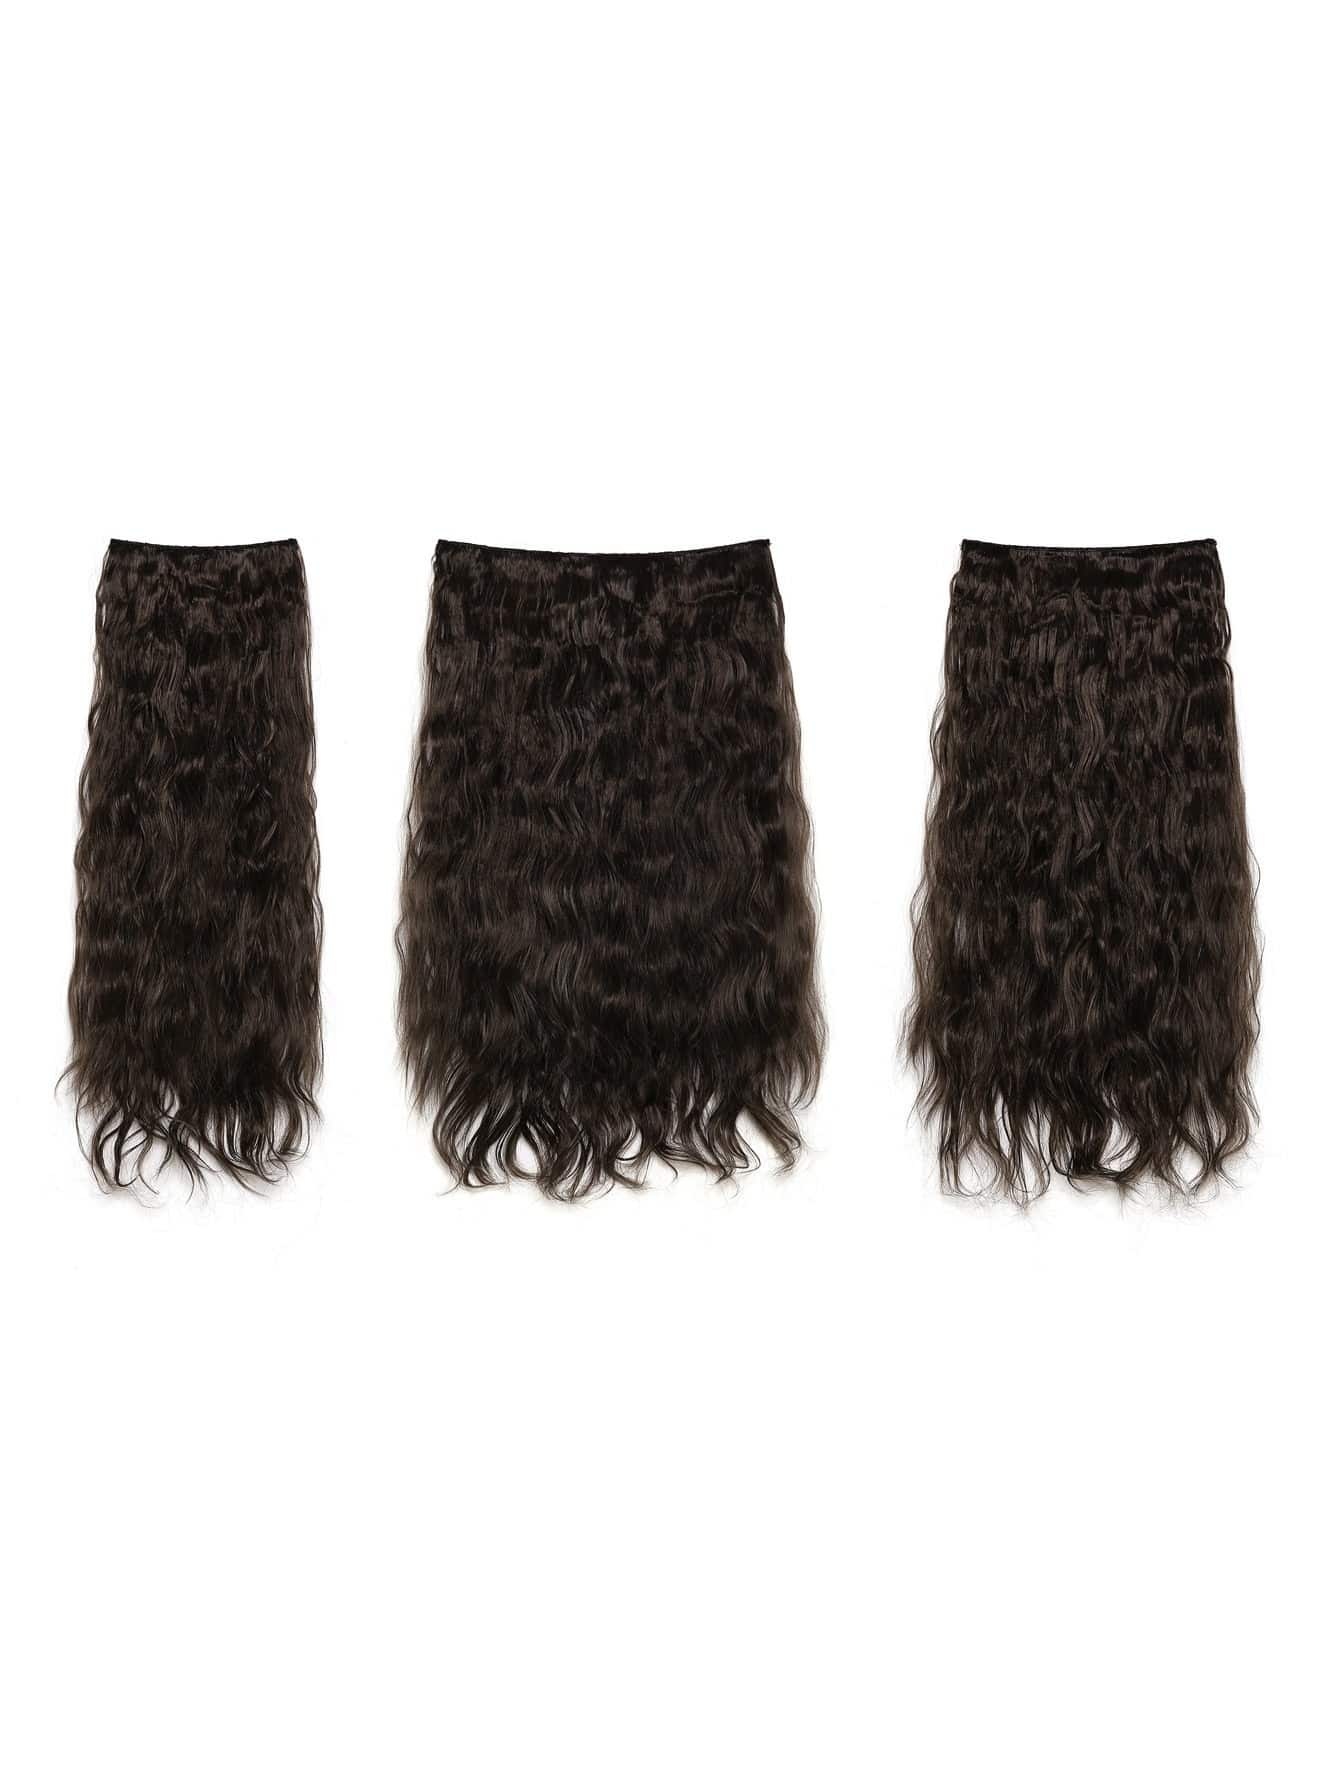 все цены на Dark Brown Clip In Curly Hair Extension 3pcs онлайн